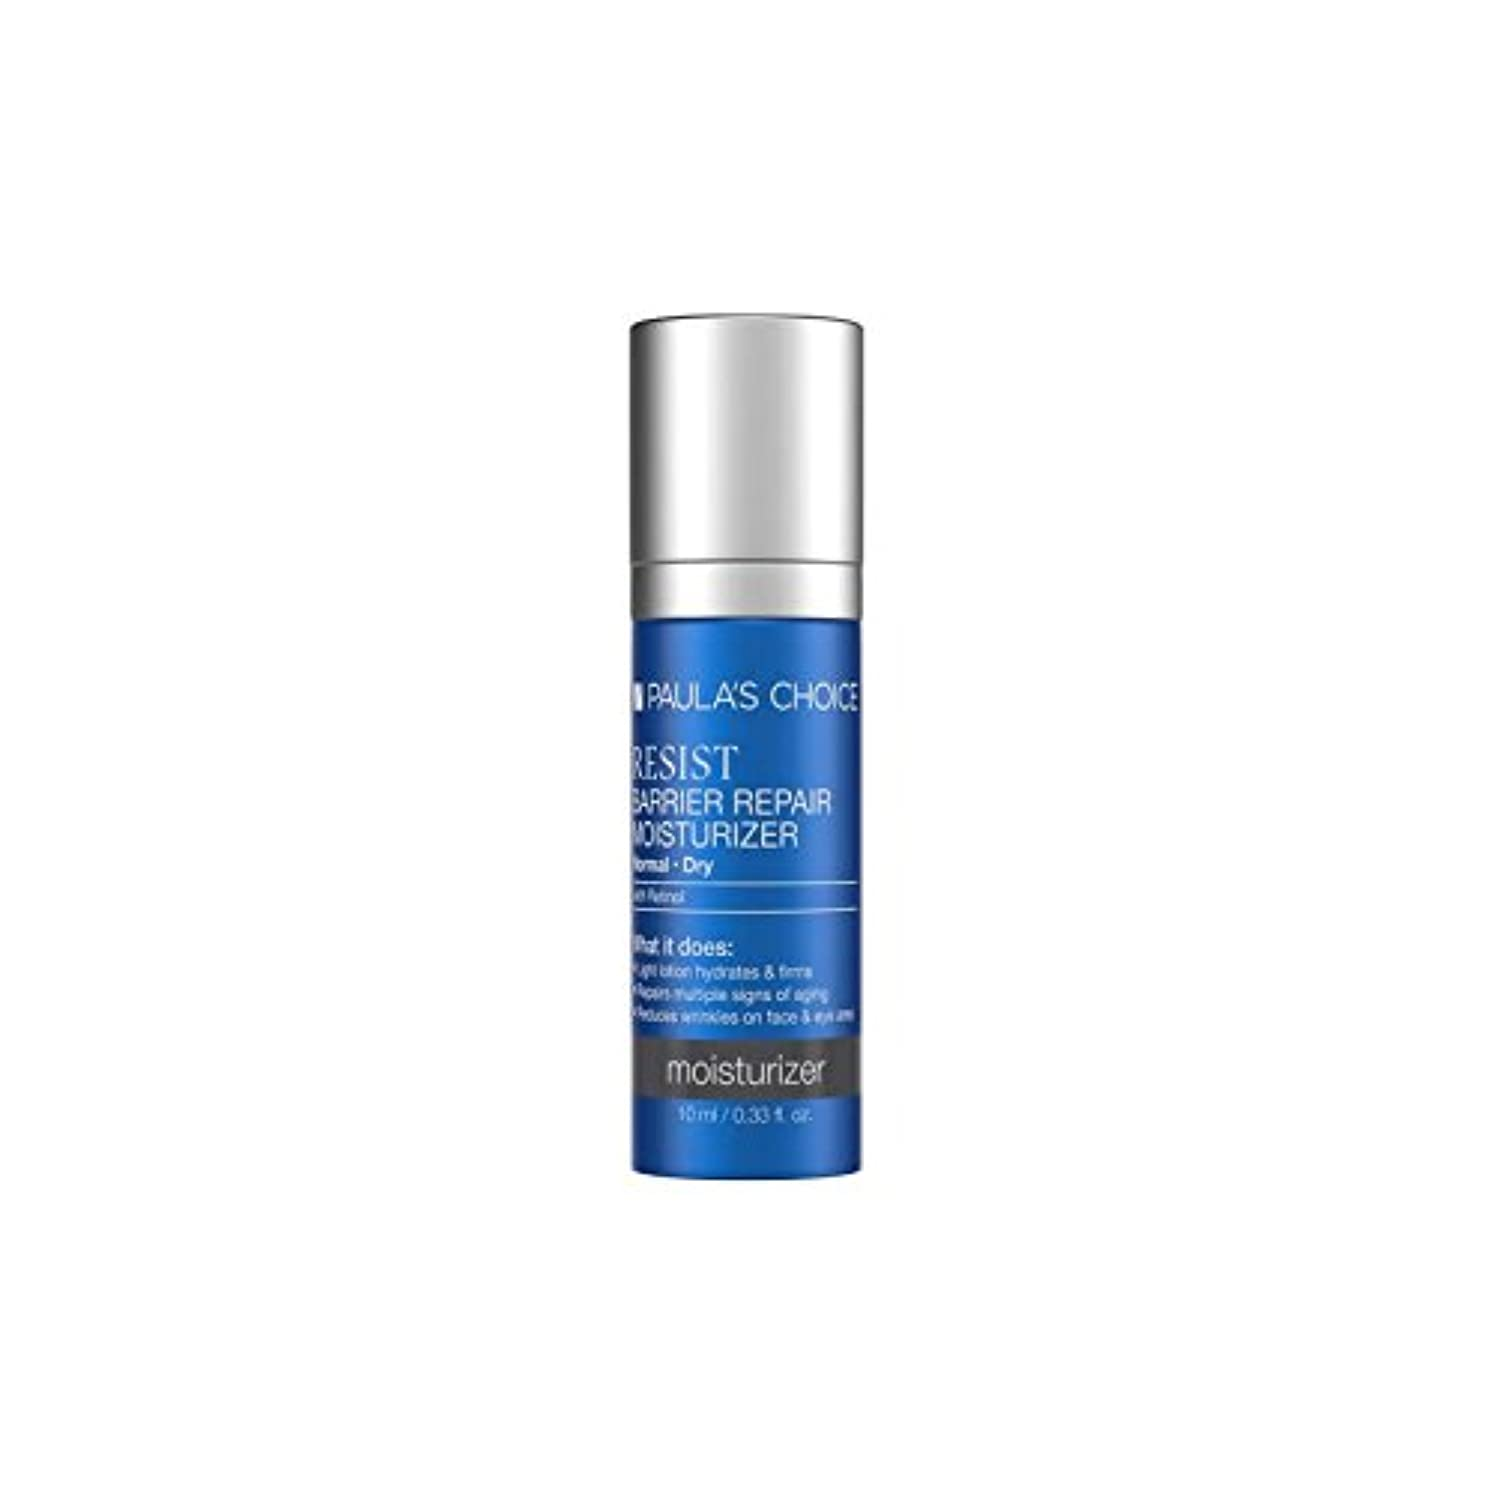 やめるシフトピッチャーPaula's Choice Resist Barrier Repair Moisturizer With Retinol - Trial Size (10ml) (Pack of 6) - トライアルサイズ(10ミリリットル...